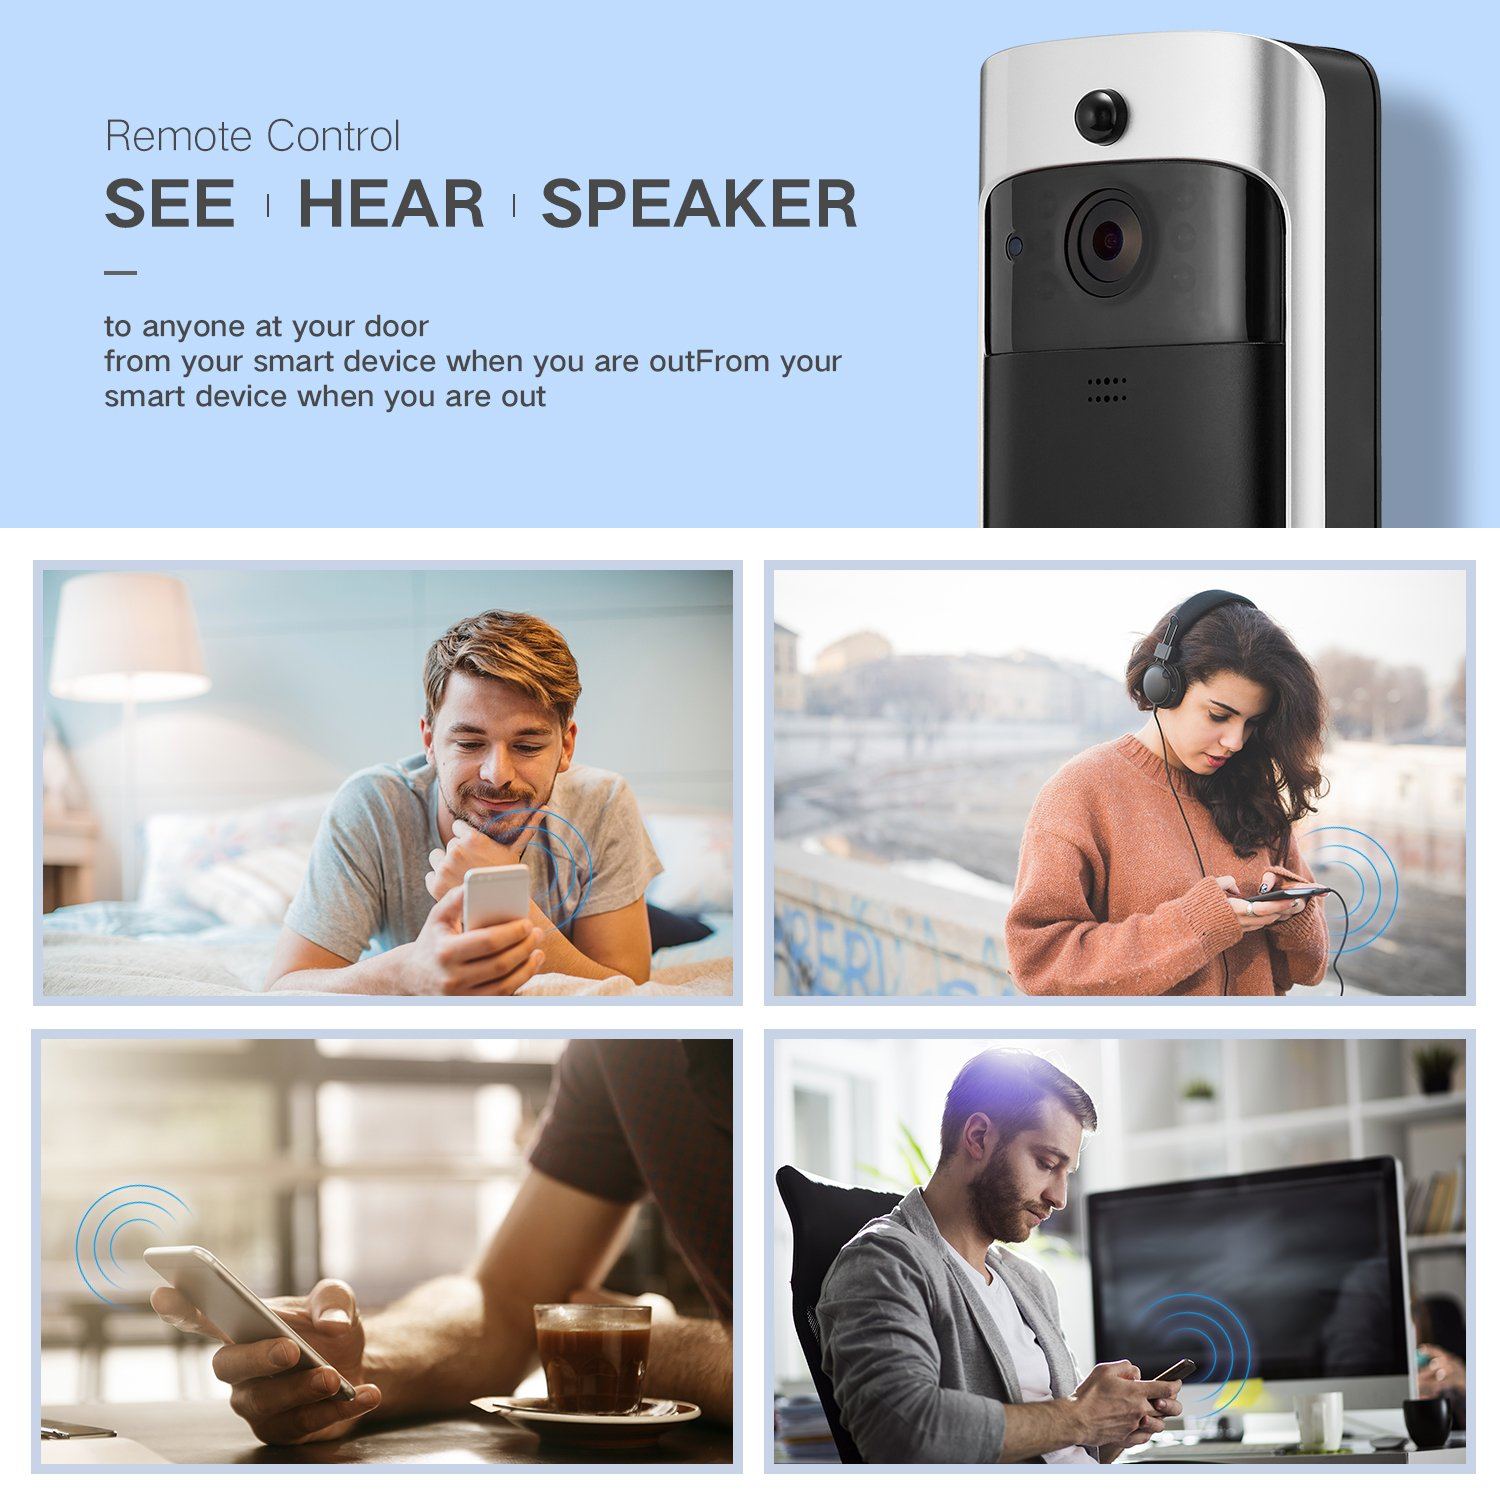 GJT Smart Video Doorbell Wireless Home WIFI Security Camera With Indoor Chime, 8G SD Card, Free Cloud Service, 2 Batteries, 2-Way Talk, Night Vision, PIR Motion Detection, APP Control for IOS Android by GJT (Image #3)